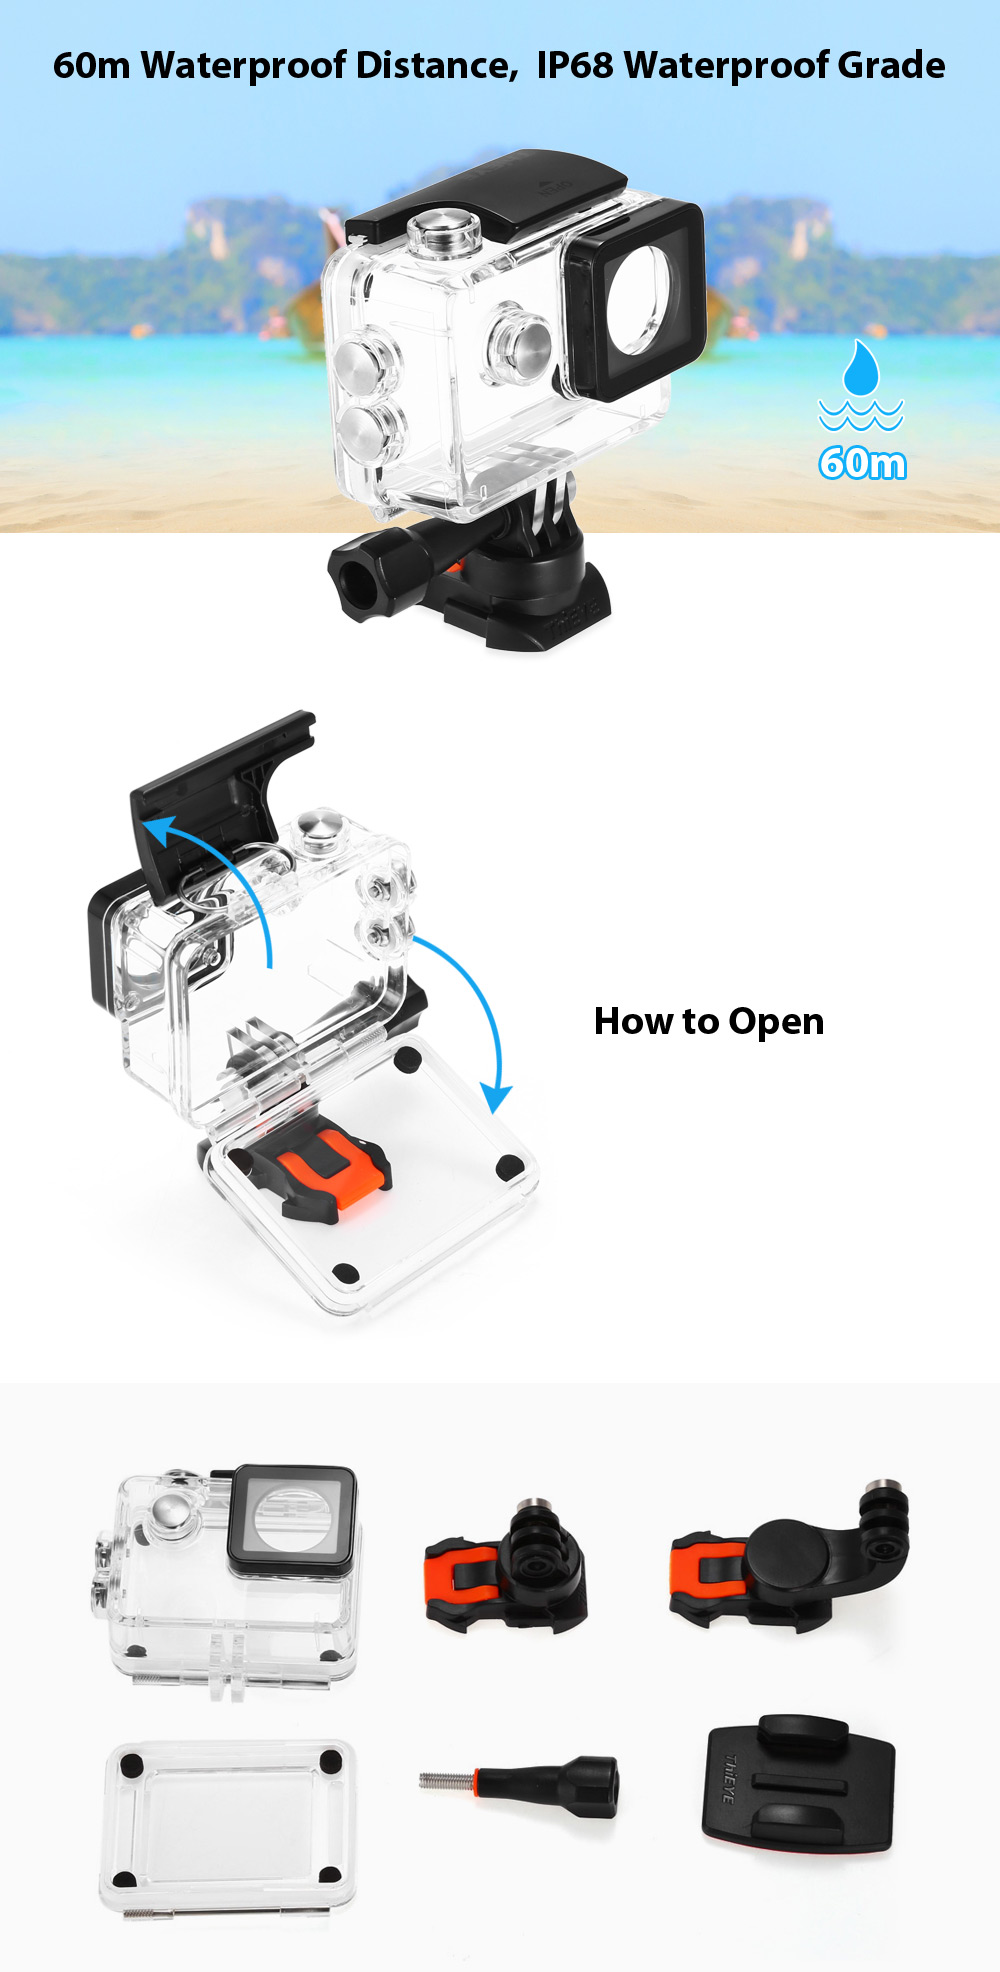 ThiEYE 60m IP68 Waterproof Housing Kit for T5e Action Camera